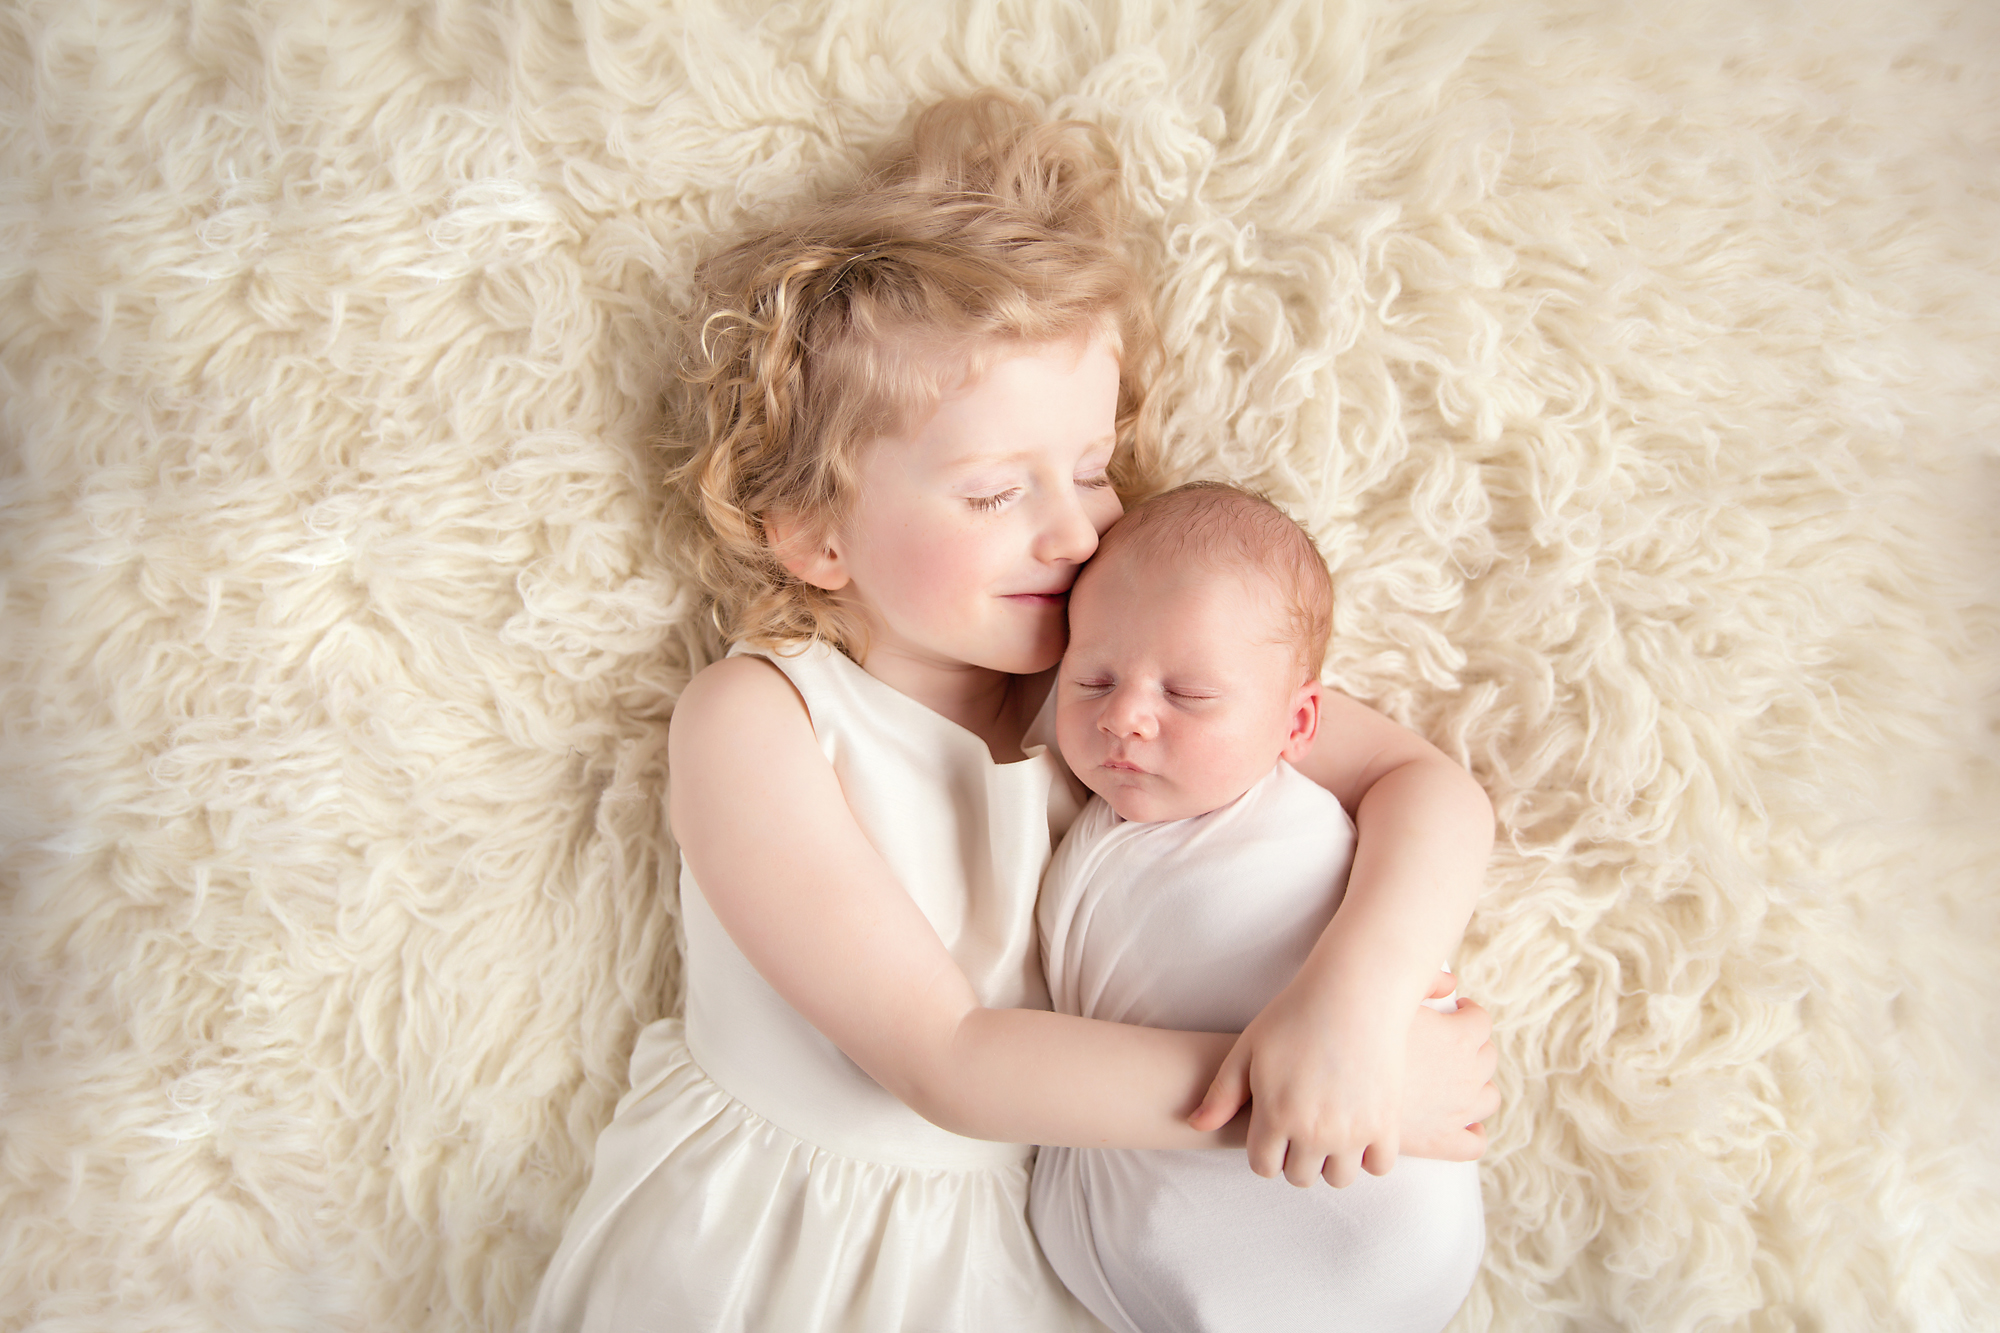 Big sister is giving her newborn baby brother a kiss. Newborn photography. Siblings on a flokati. Calgary Newborn and Baby photographer - Milashka Photography.